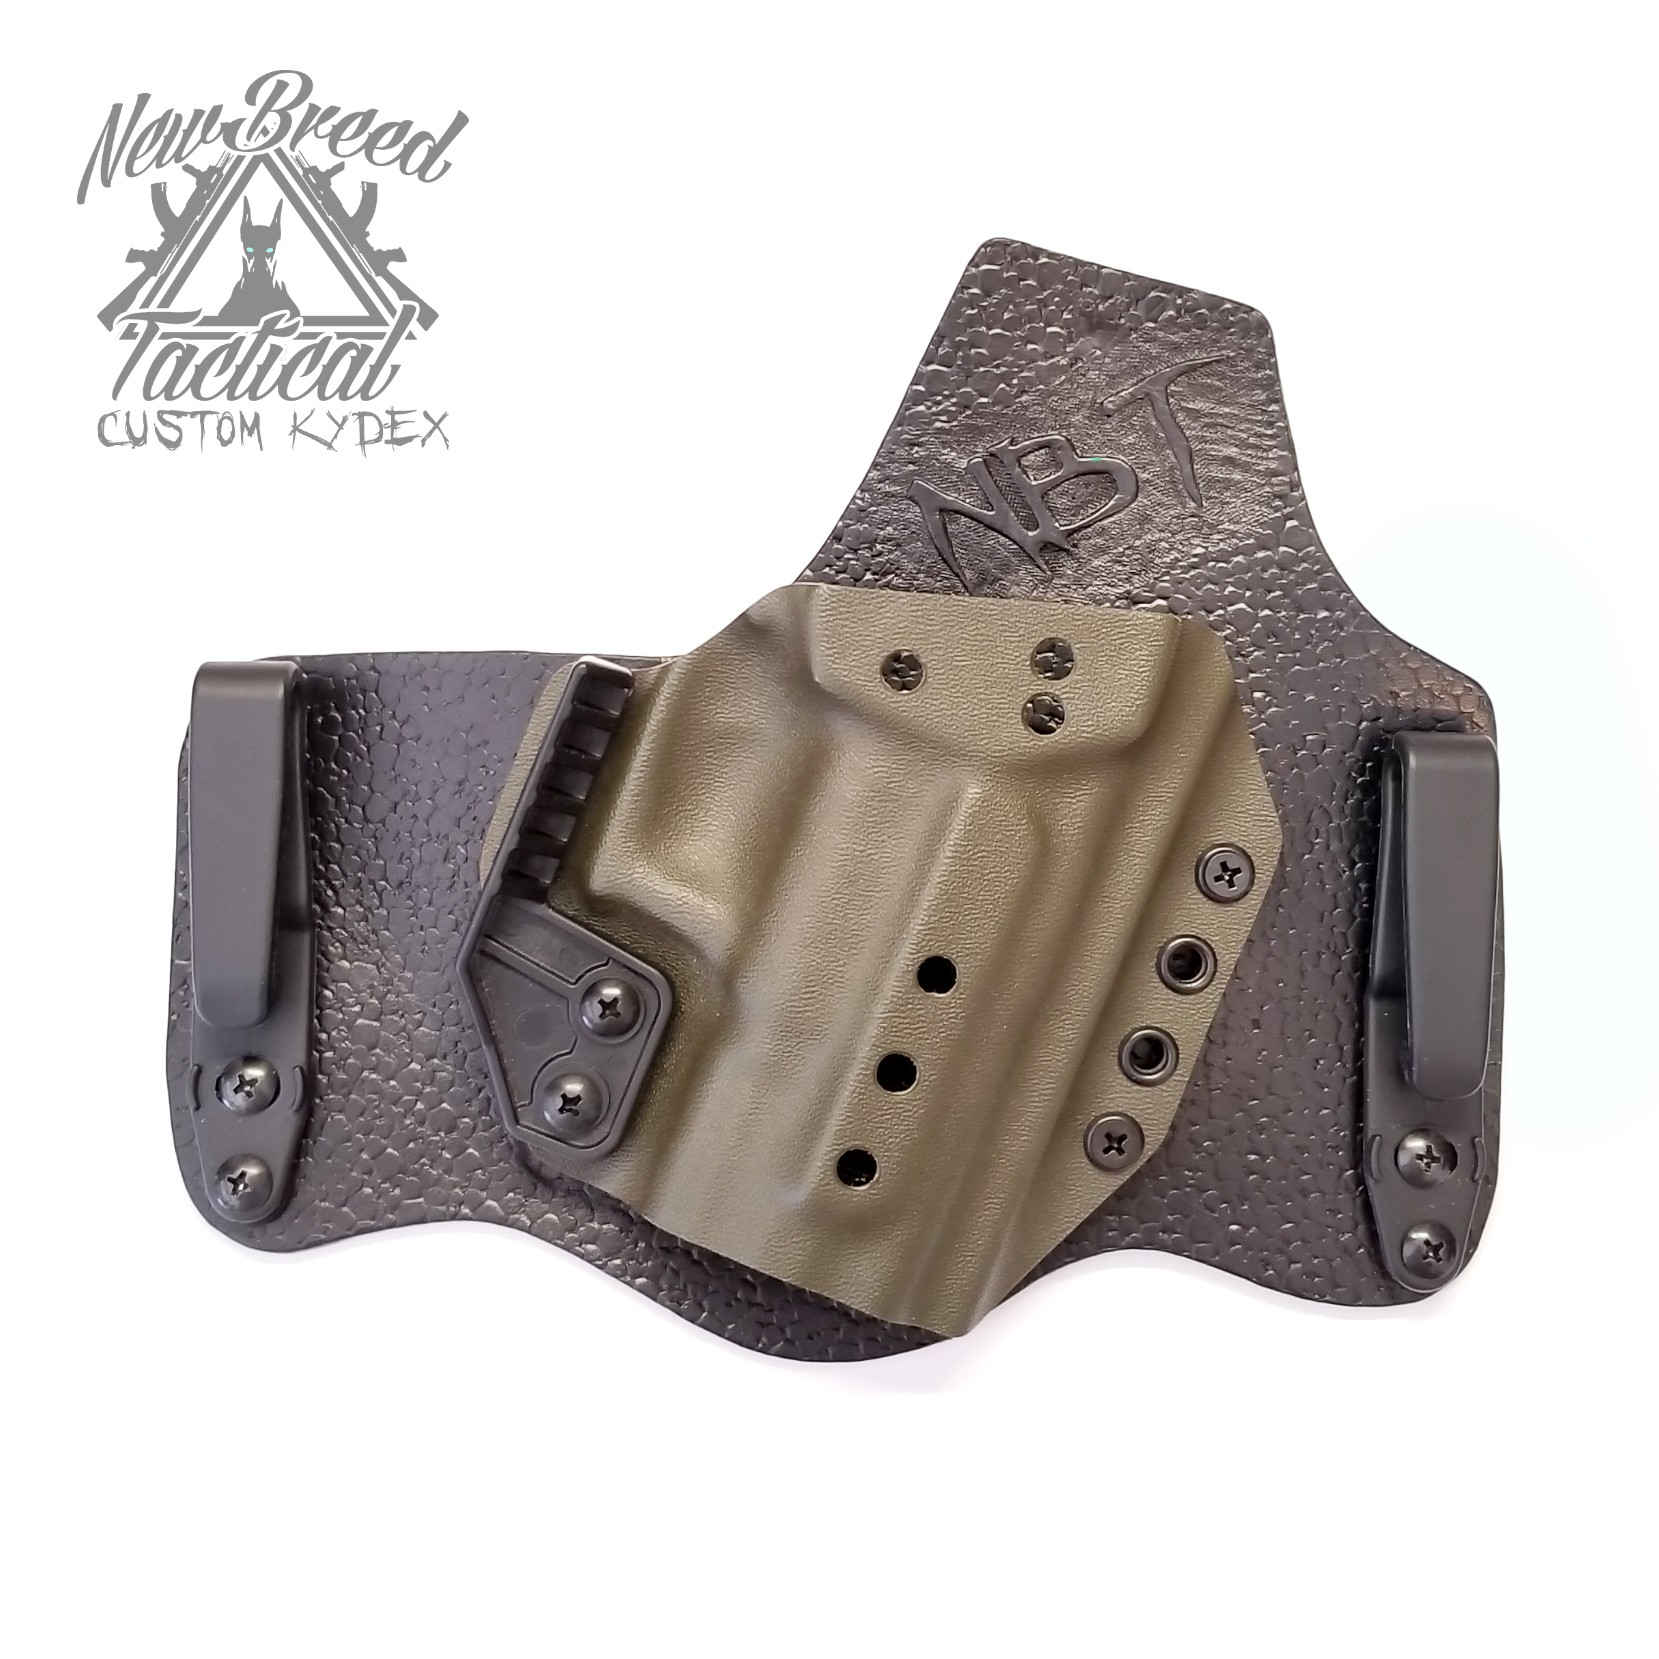 Halfbreed Kydex/Leather Hybrid IWB Holster